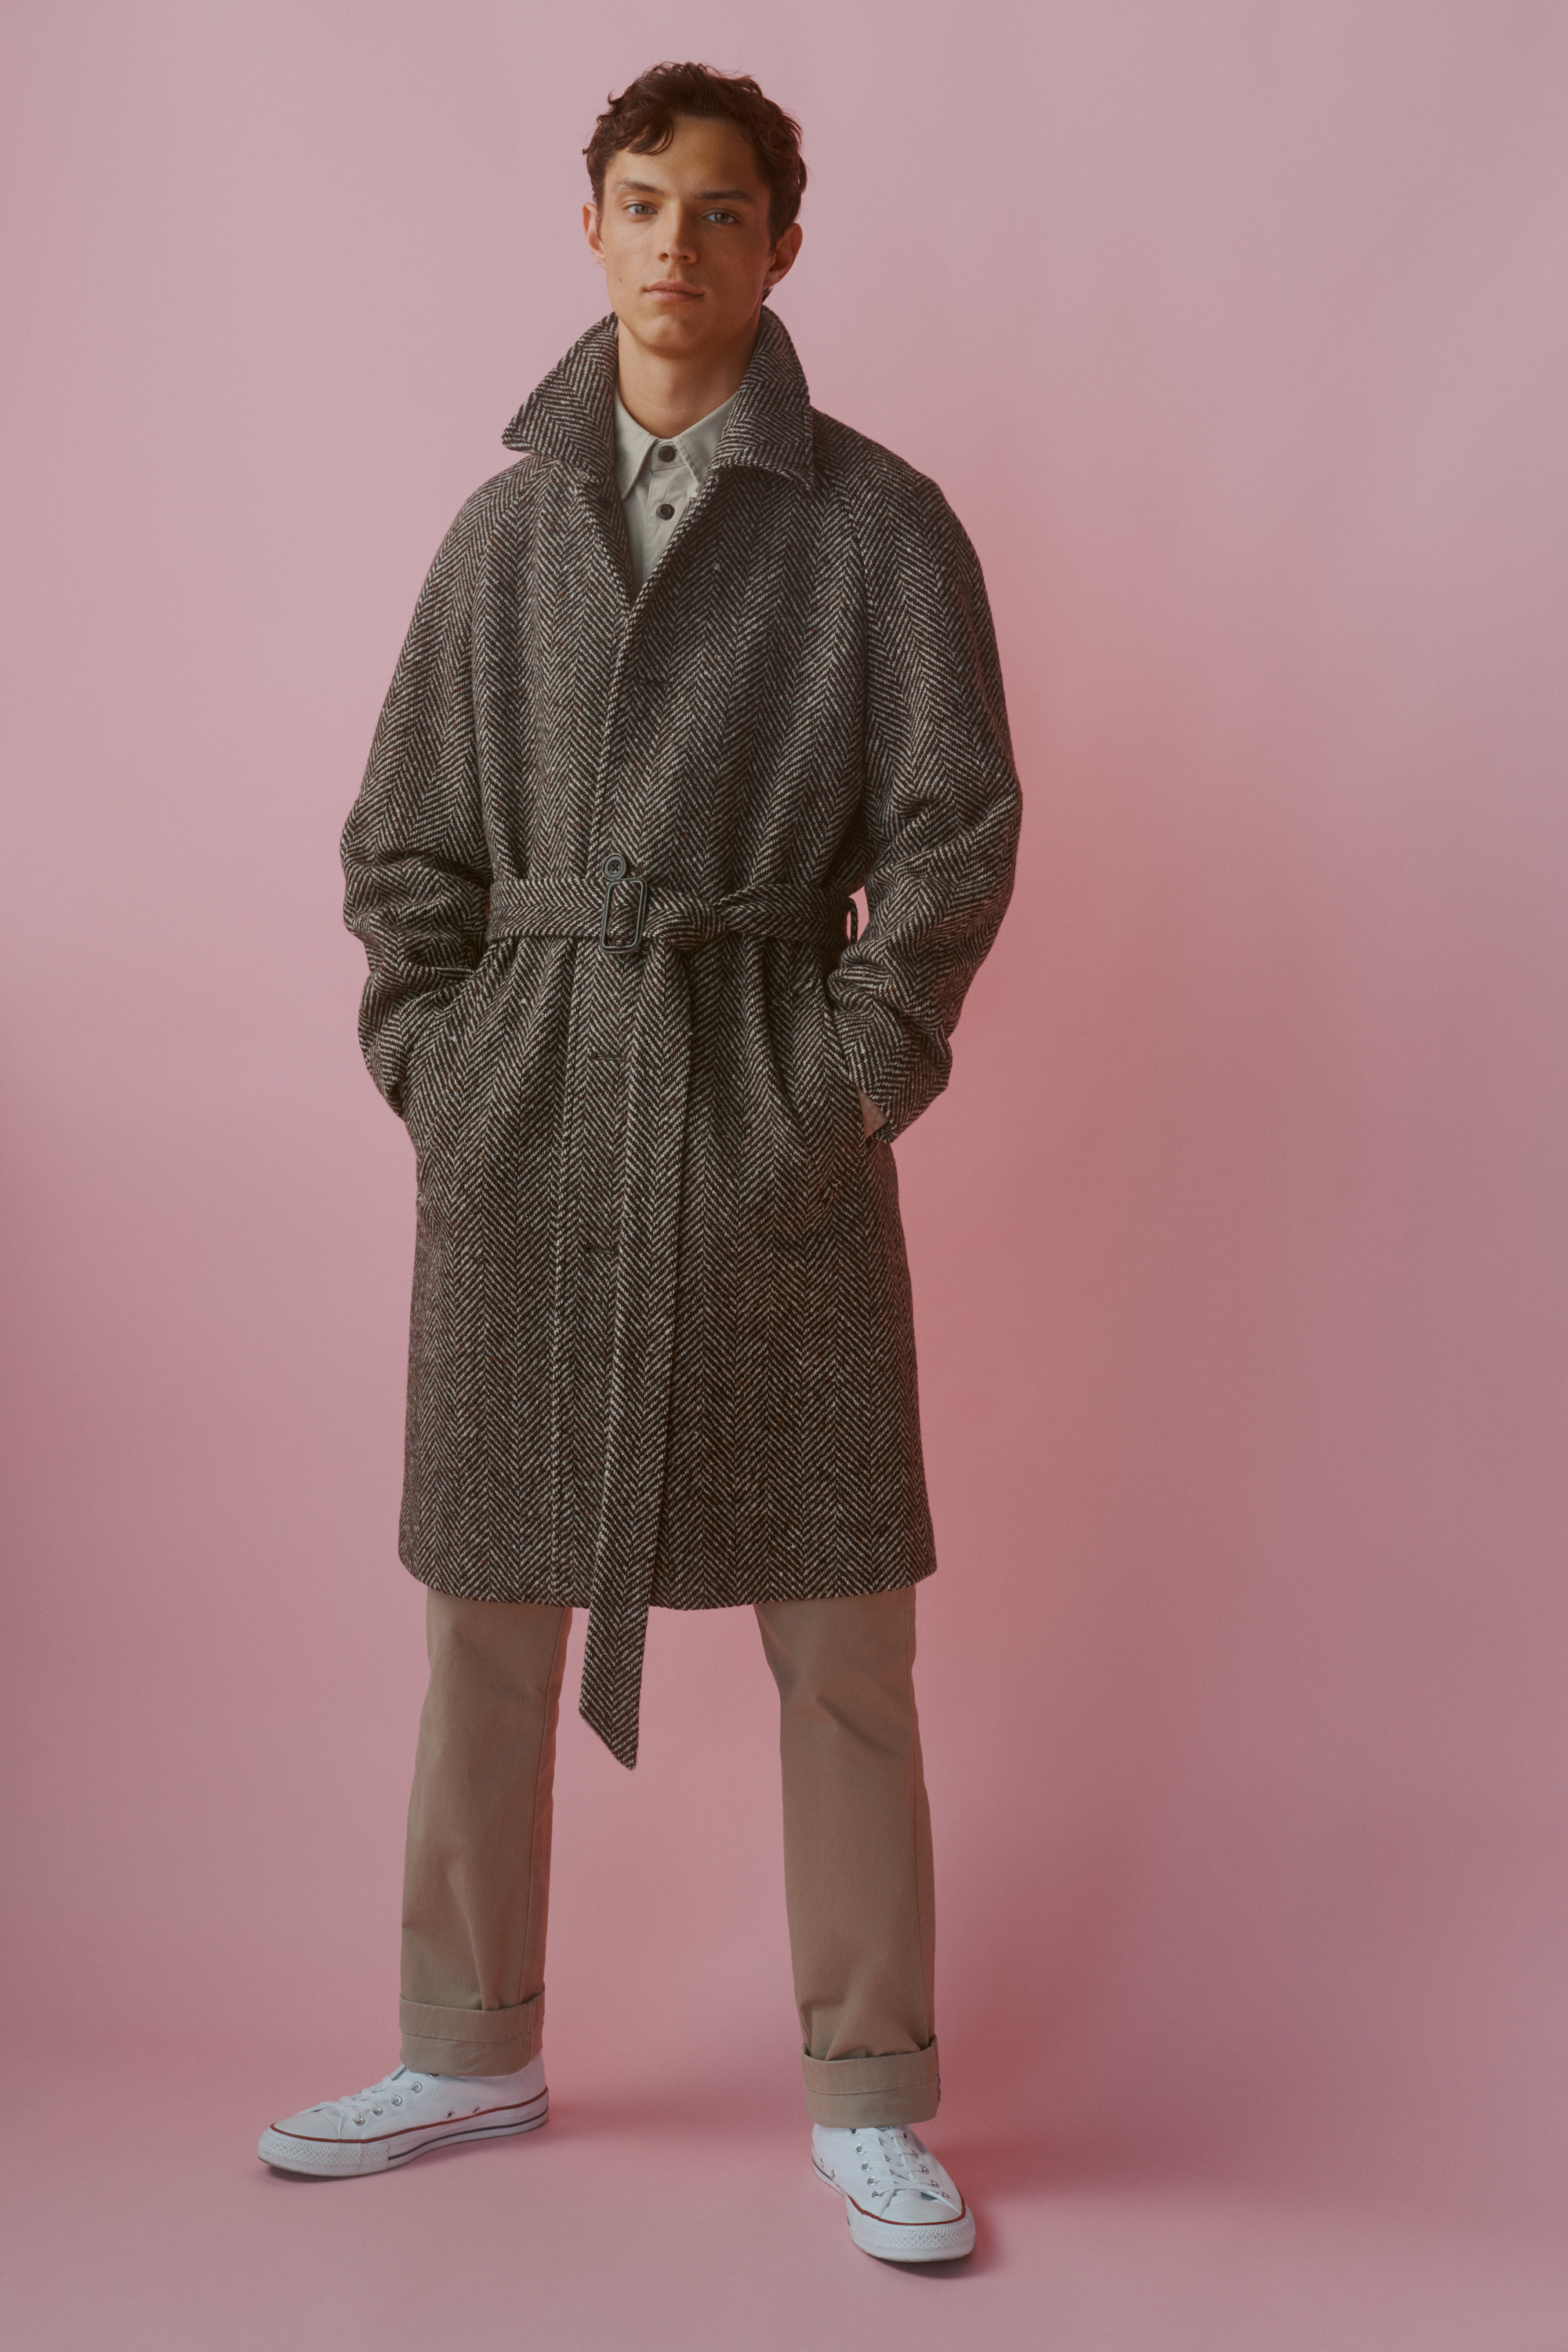 An Italian herringbone raglan coat, cotton twill overshirt,  straight fit essential chino and Converse high tops, all from John Lewis in Britain.